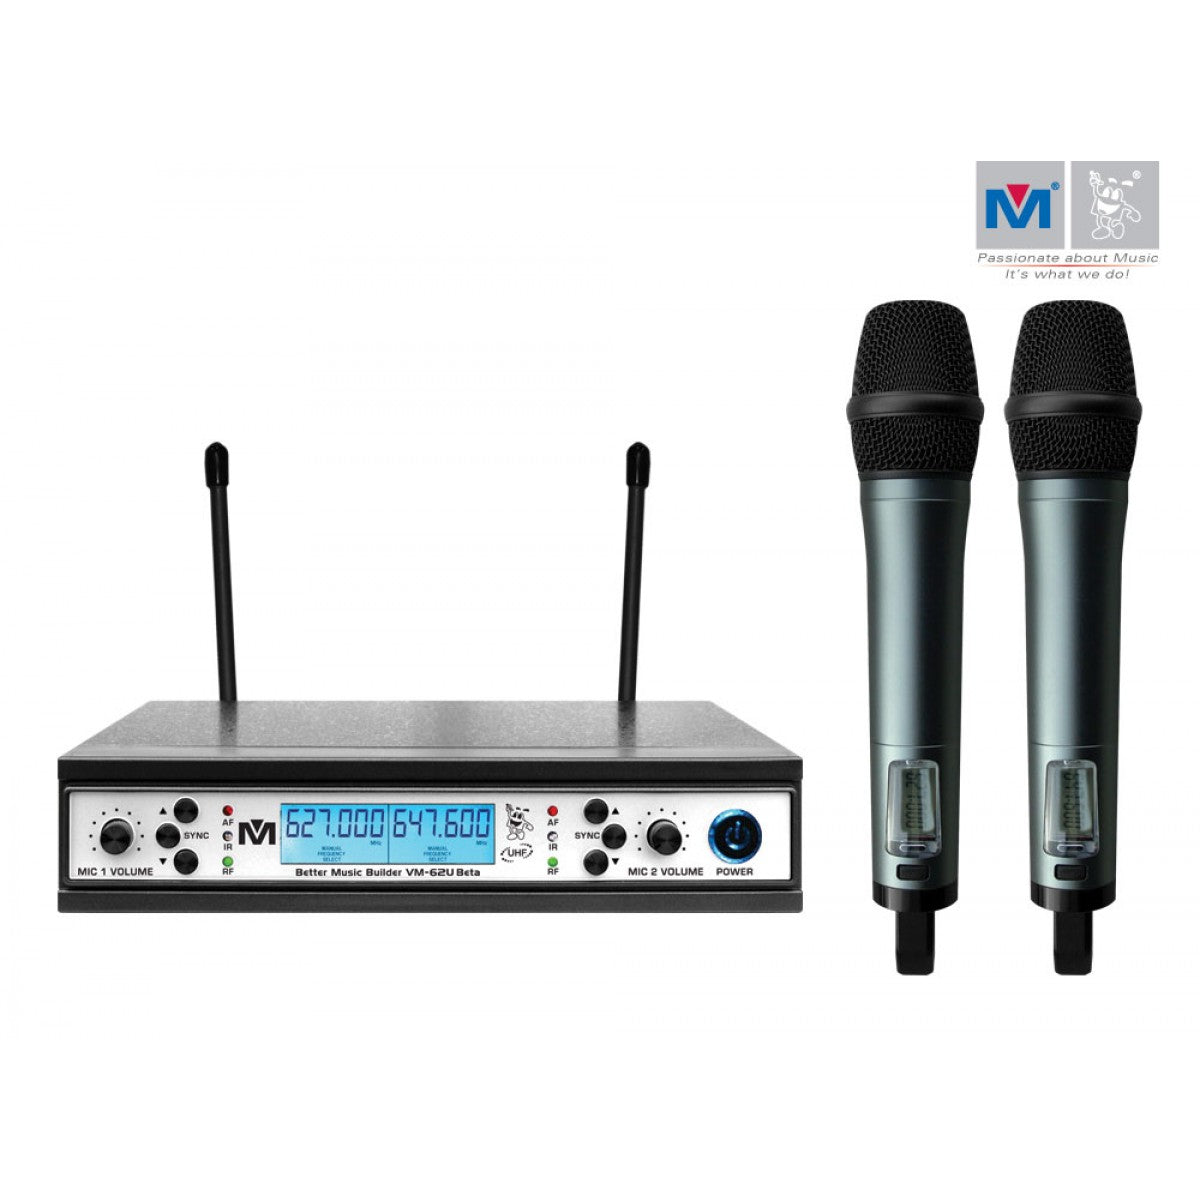 Better Music Builder VM-62U Beta Dual Channel Wireless Microphones